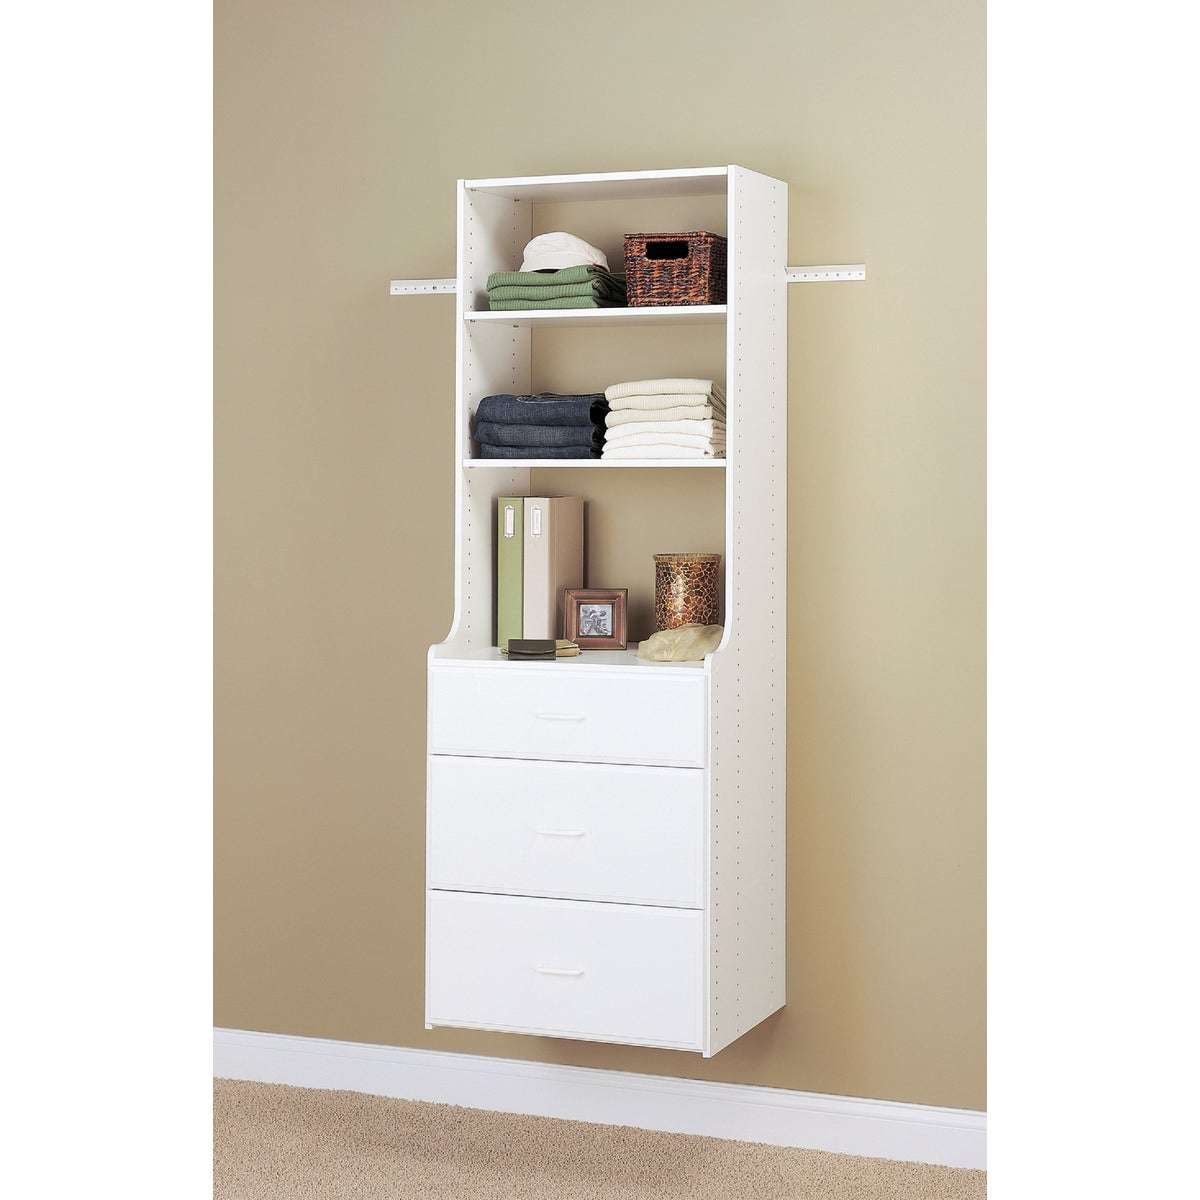 Item 242222, Hutch tower unit allows for deeper drawers, 14 In. deep on top and 19 In. below for increased storage capacity; includes (2) 72 In. Hutch vertical panels and 2 shelves.